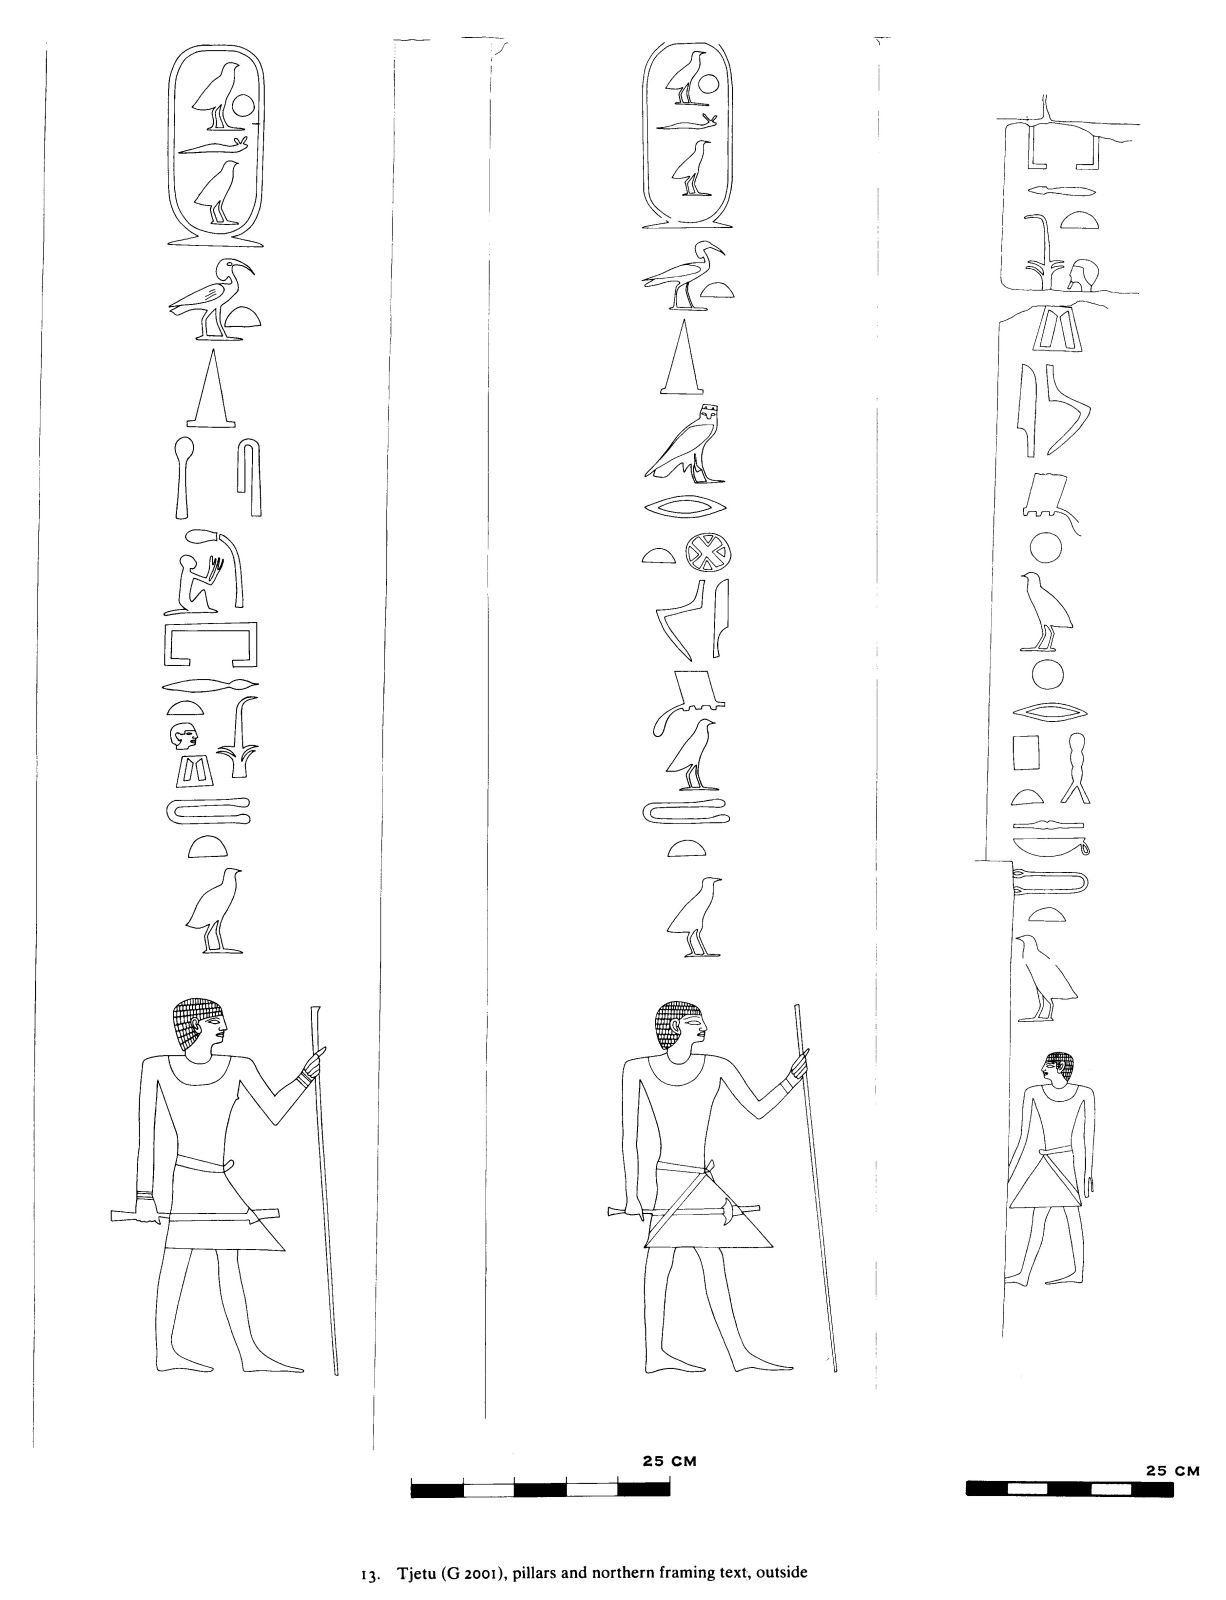 Drawings: G 2001: relief from pillars